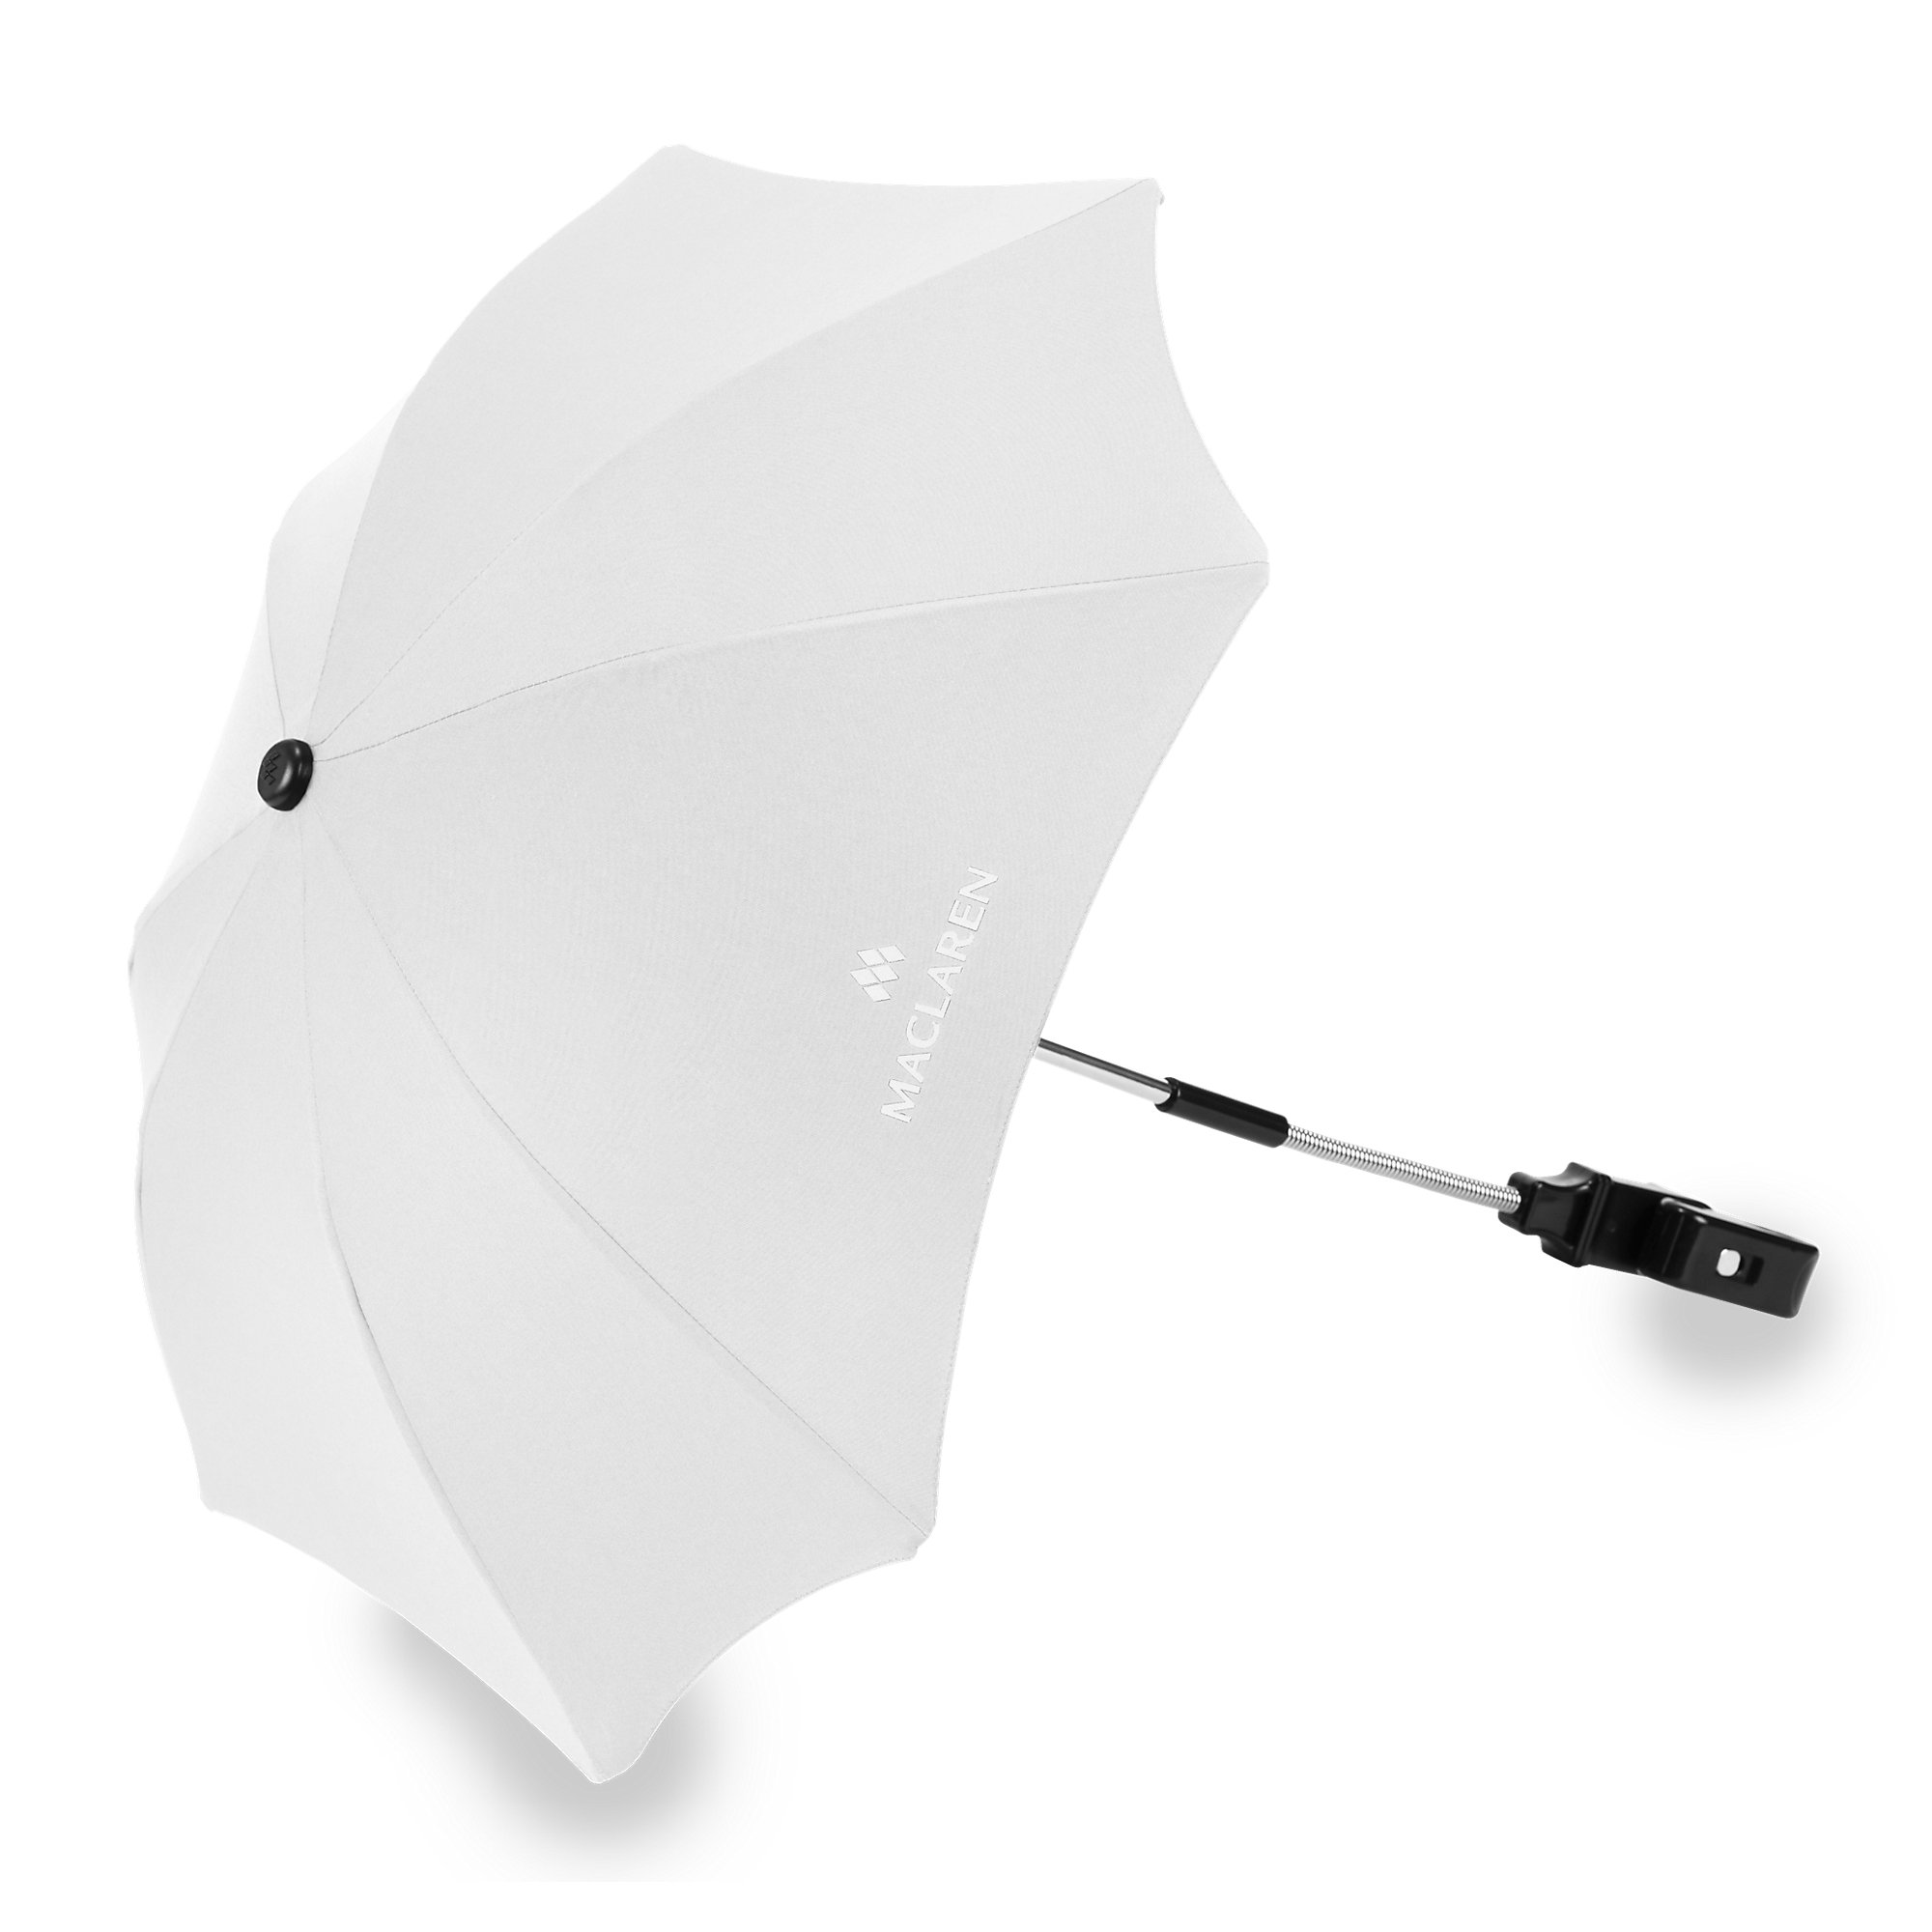 Maclaren Parasol, Black - Perfect Stroller Accessory to Guard Against The Sun's Harsh Rays. UPF 50+ sunshield Easily fastens to The Frame of All Maclarens and Most Umbrella-fold Stroller Brands by Maclaren